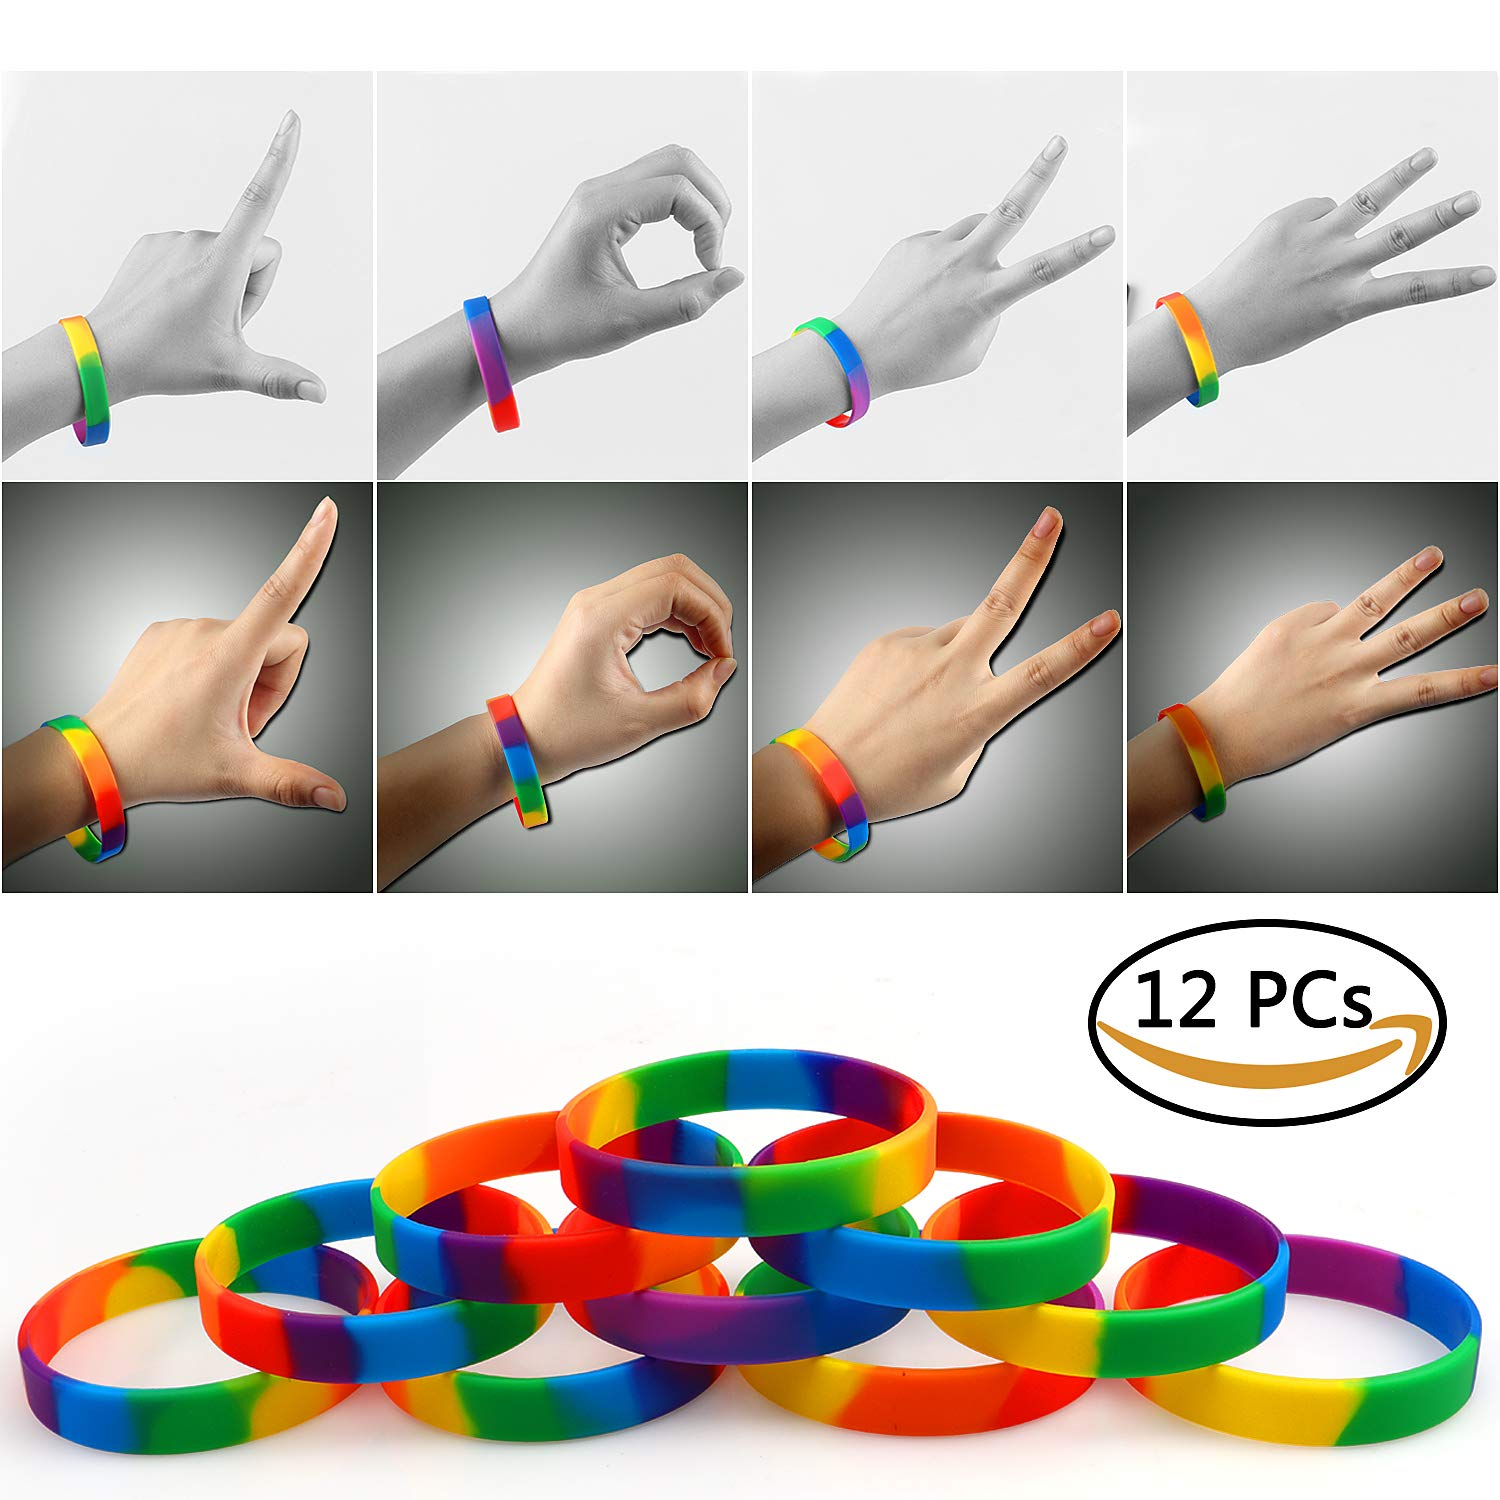 VAMEI 12pcs Gay Pride Rainbow Wristbands 6 Colors LGBT Party Silicone Rubber Bracelets Yahweh's Covenant Wristbands TZGJSH00